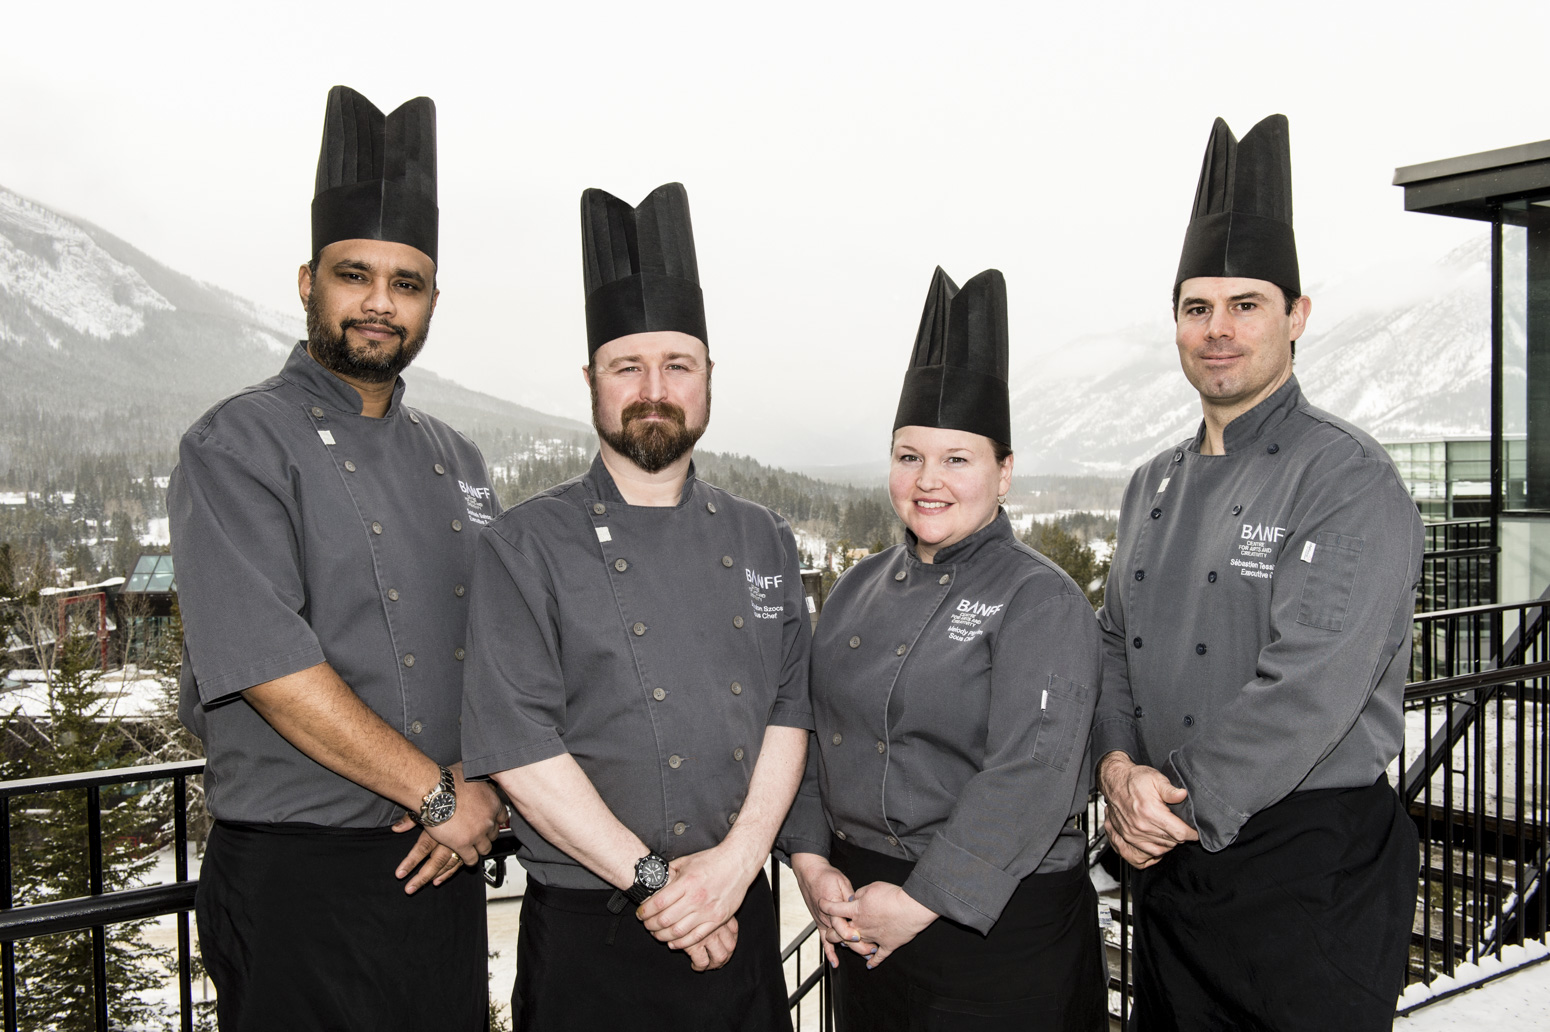 Executive Chef Sébastien Tessier and his award-winning culinary team